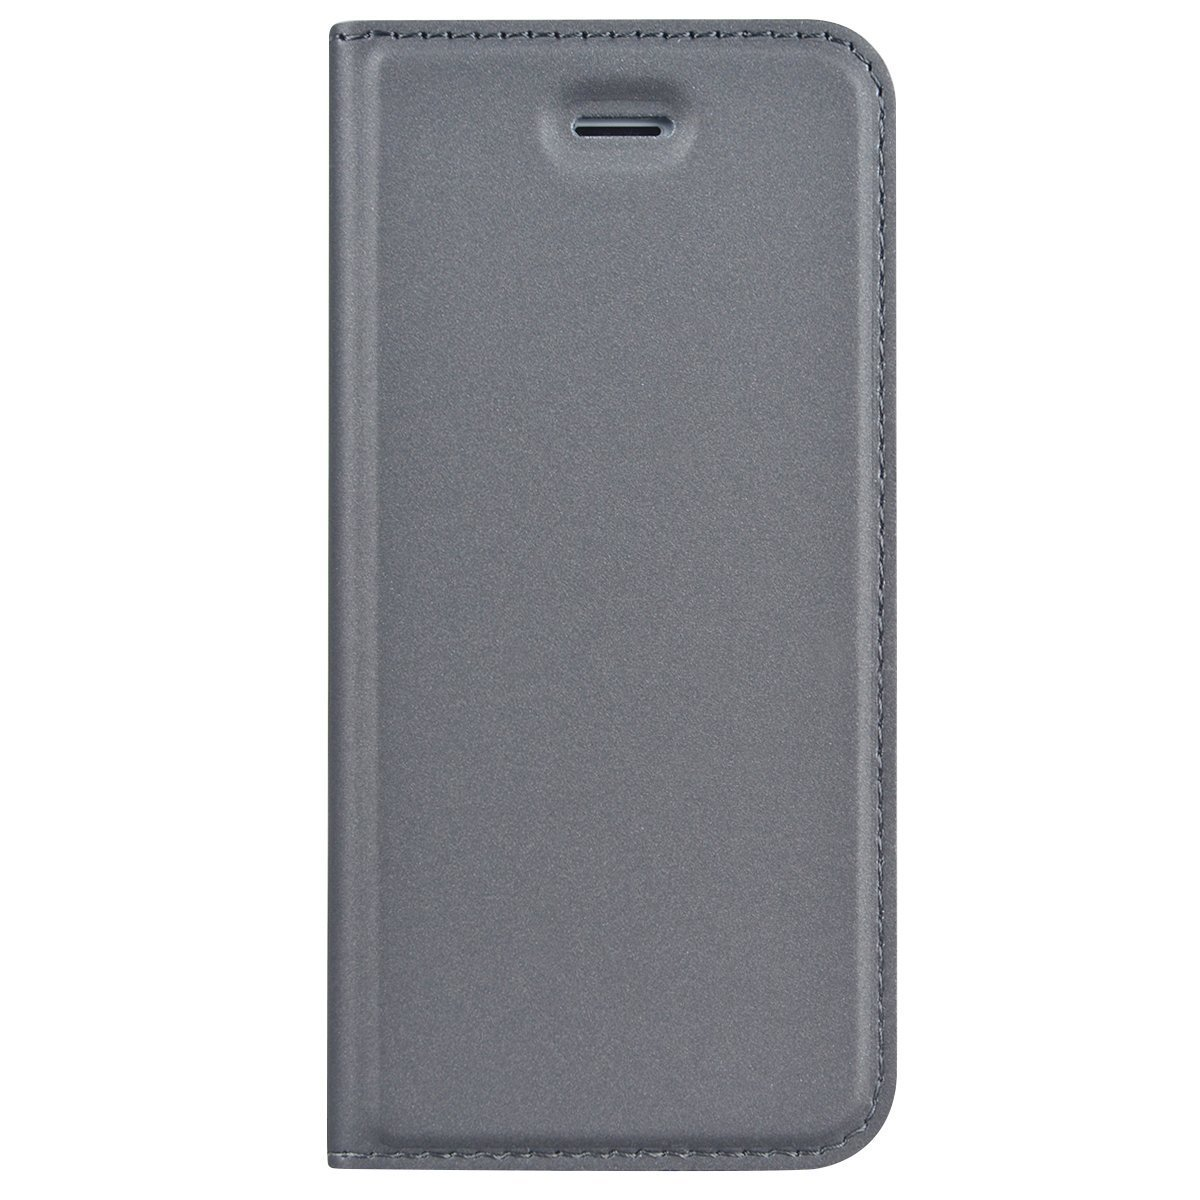 size 40 5df44 46e0d Case Compatible with iPhone SE 5 5S Leather Case Flip Wallet Stand up  Credit Card Magnetic Closure